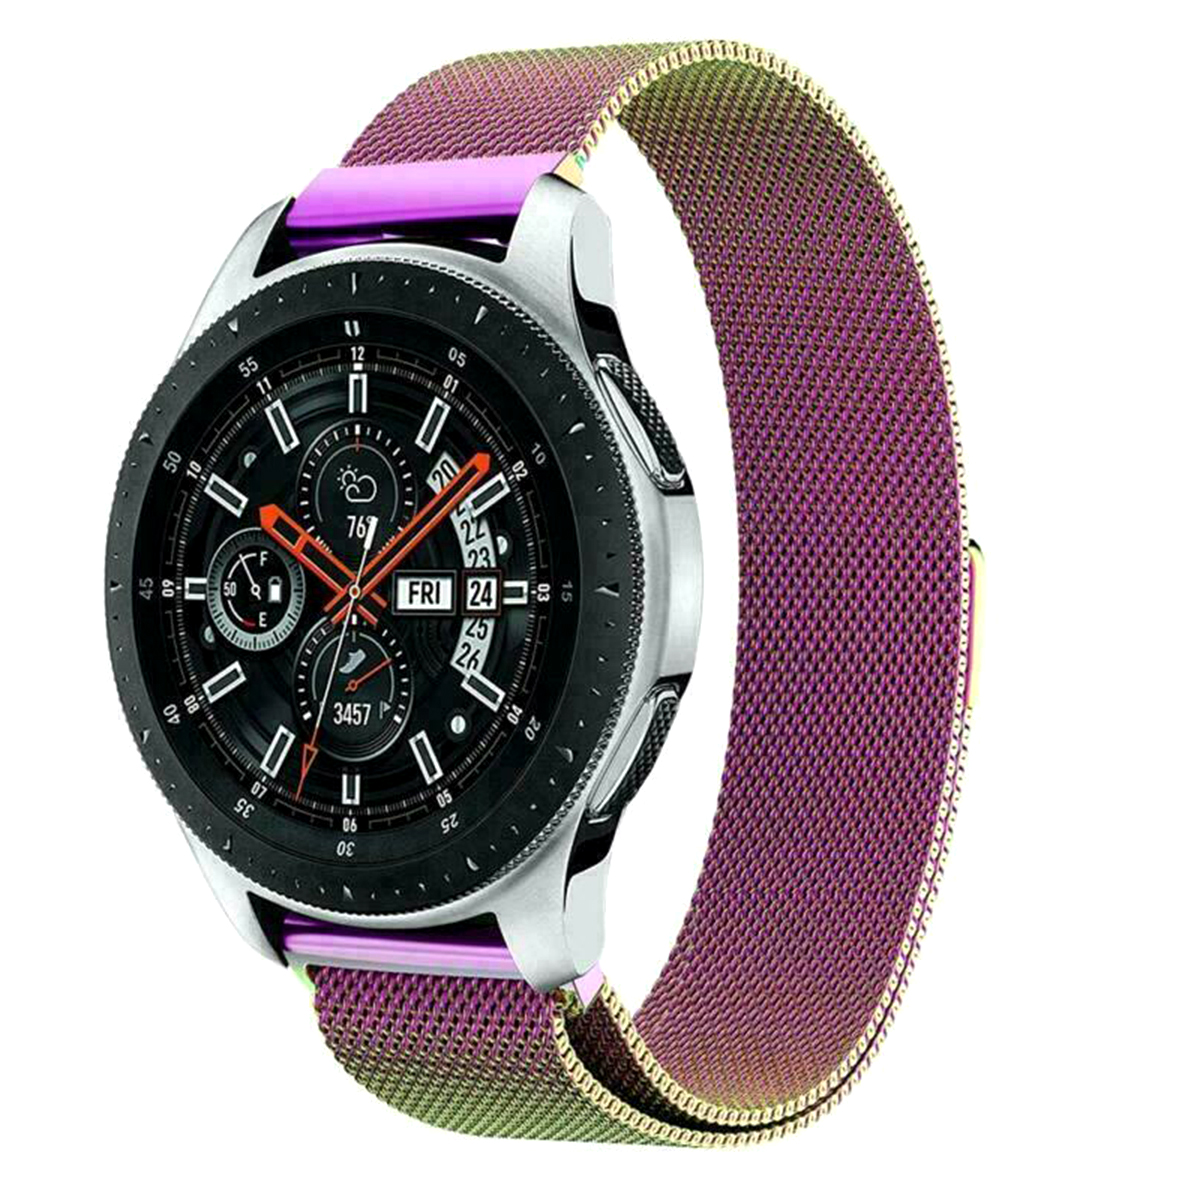 2019 Hot Sale Fashion Magnetic Watch Band Replacement Strap For Samsung Galaxy Watch 42mm/46mm